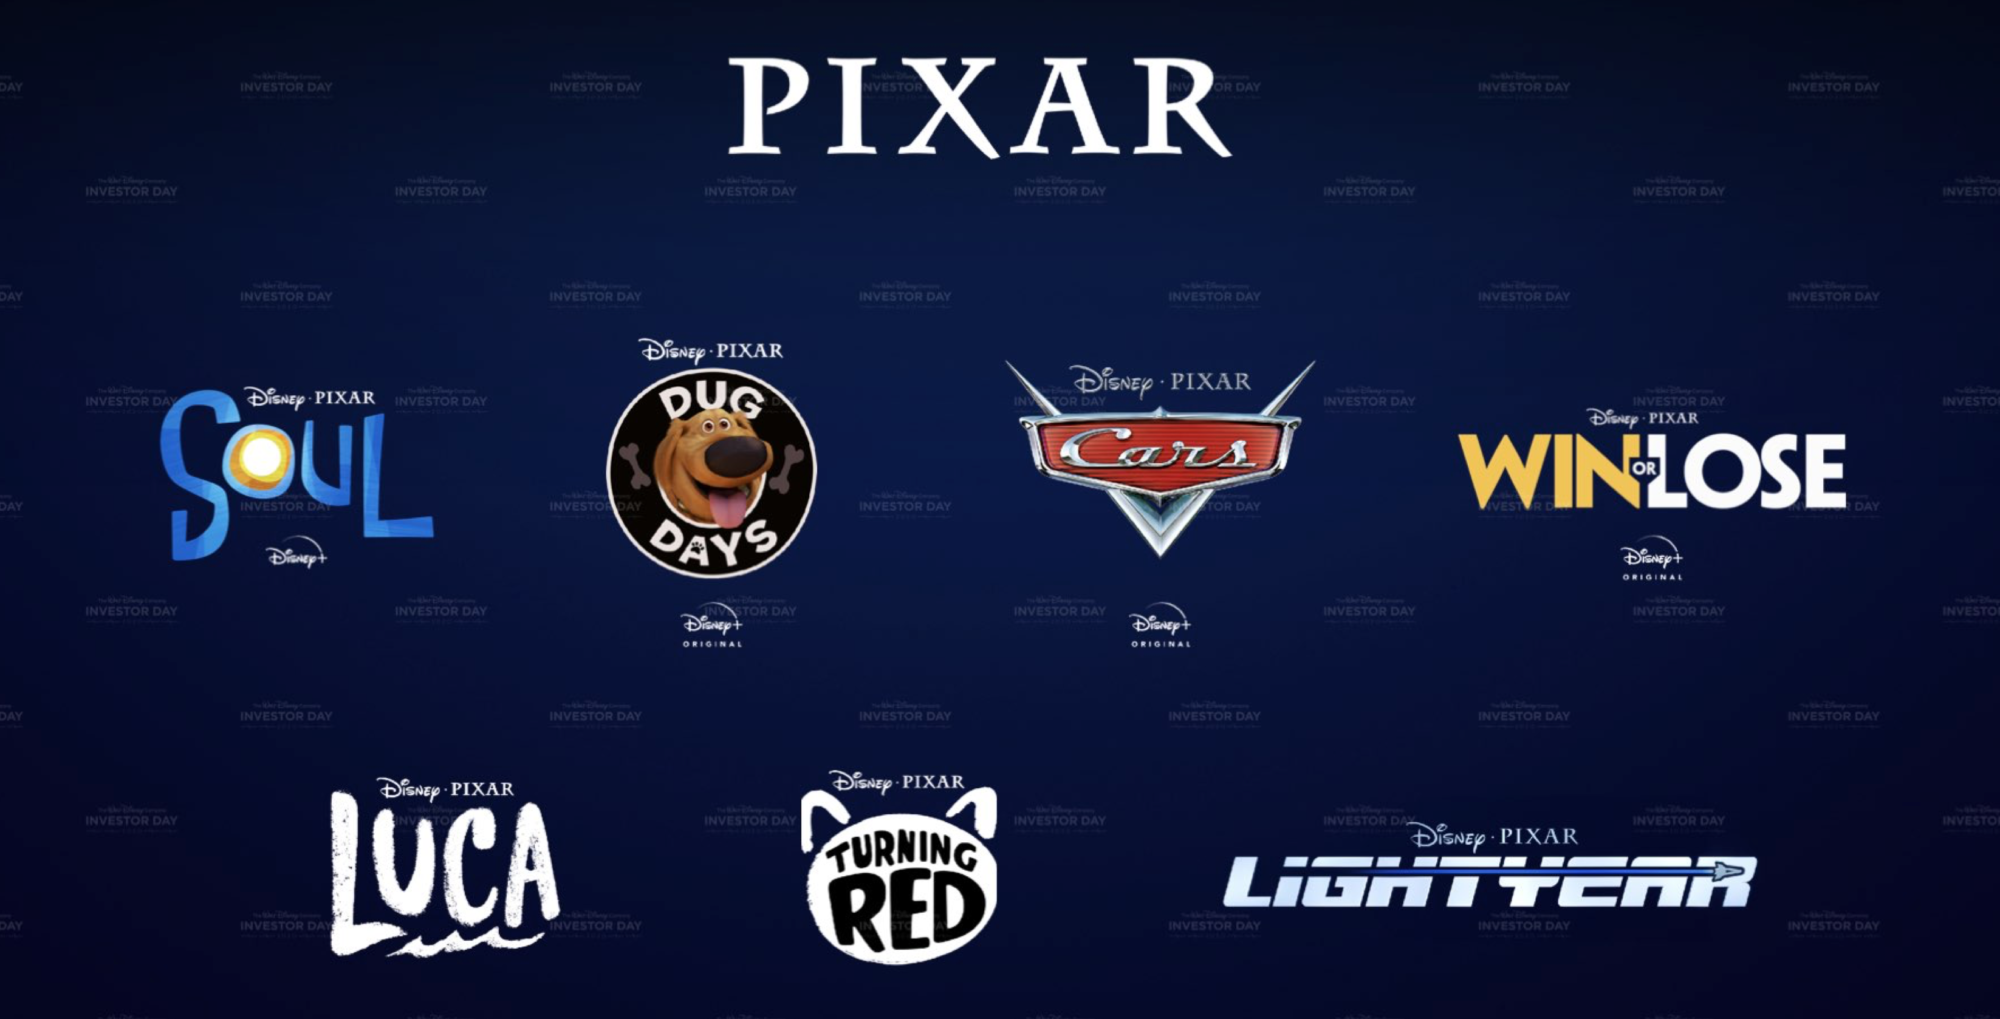 Pixar Recap of Announcements From The Walt Disney Company's Investor Day  Event on December 10, 2020 - The Main Street Mouse